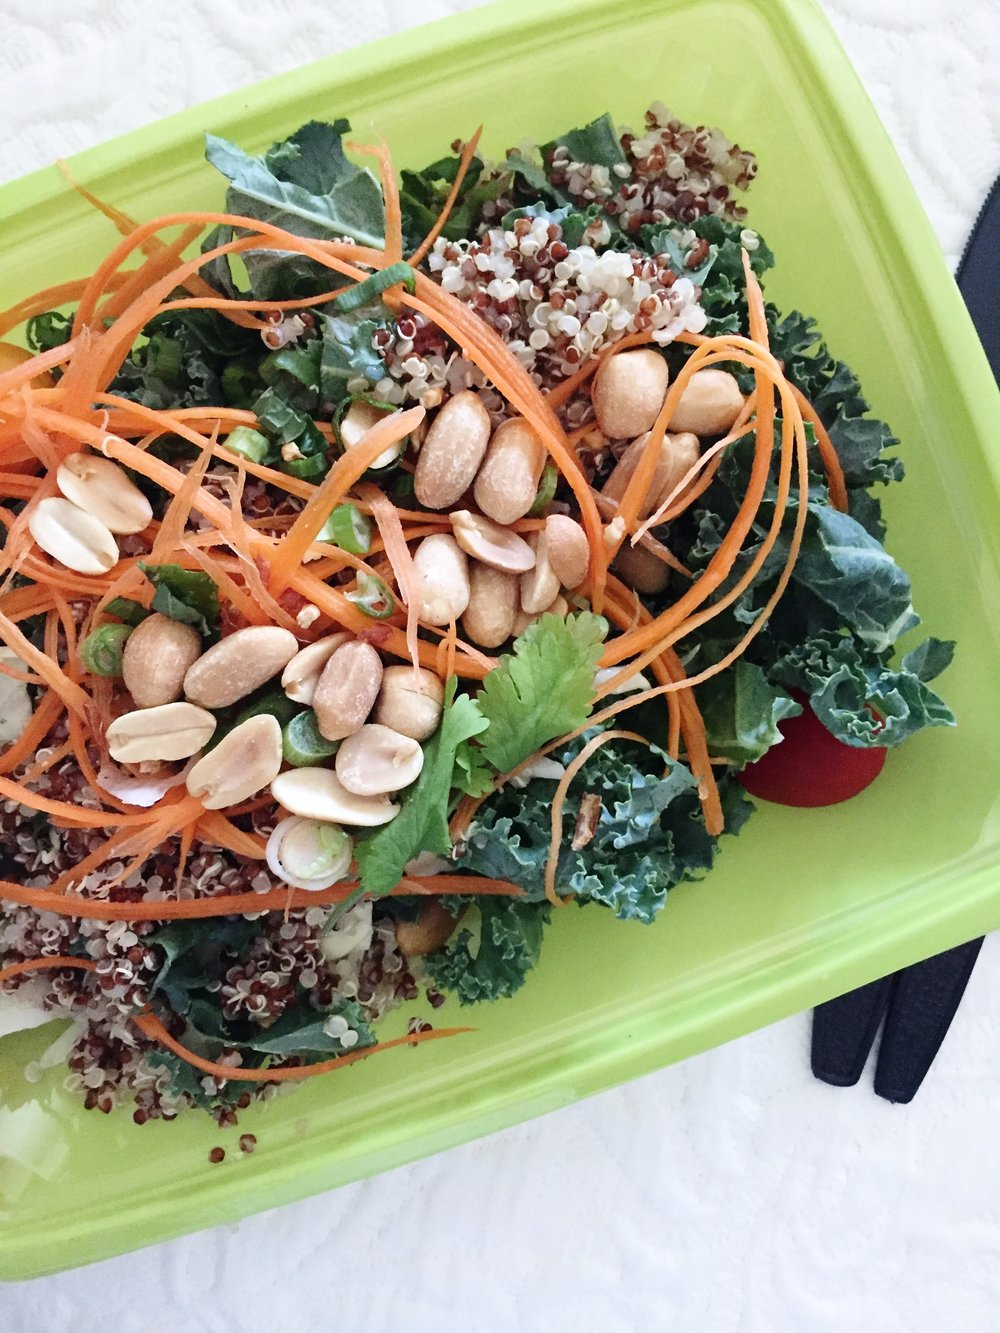 Kale Salad with Peanuts.JPG